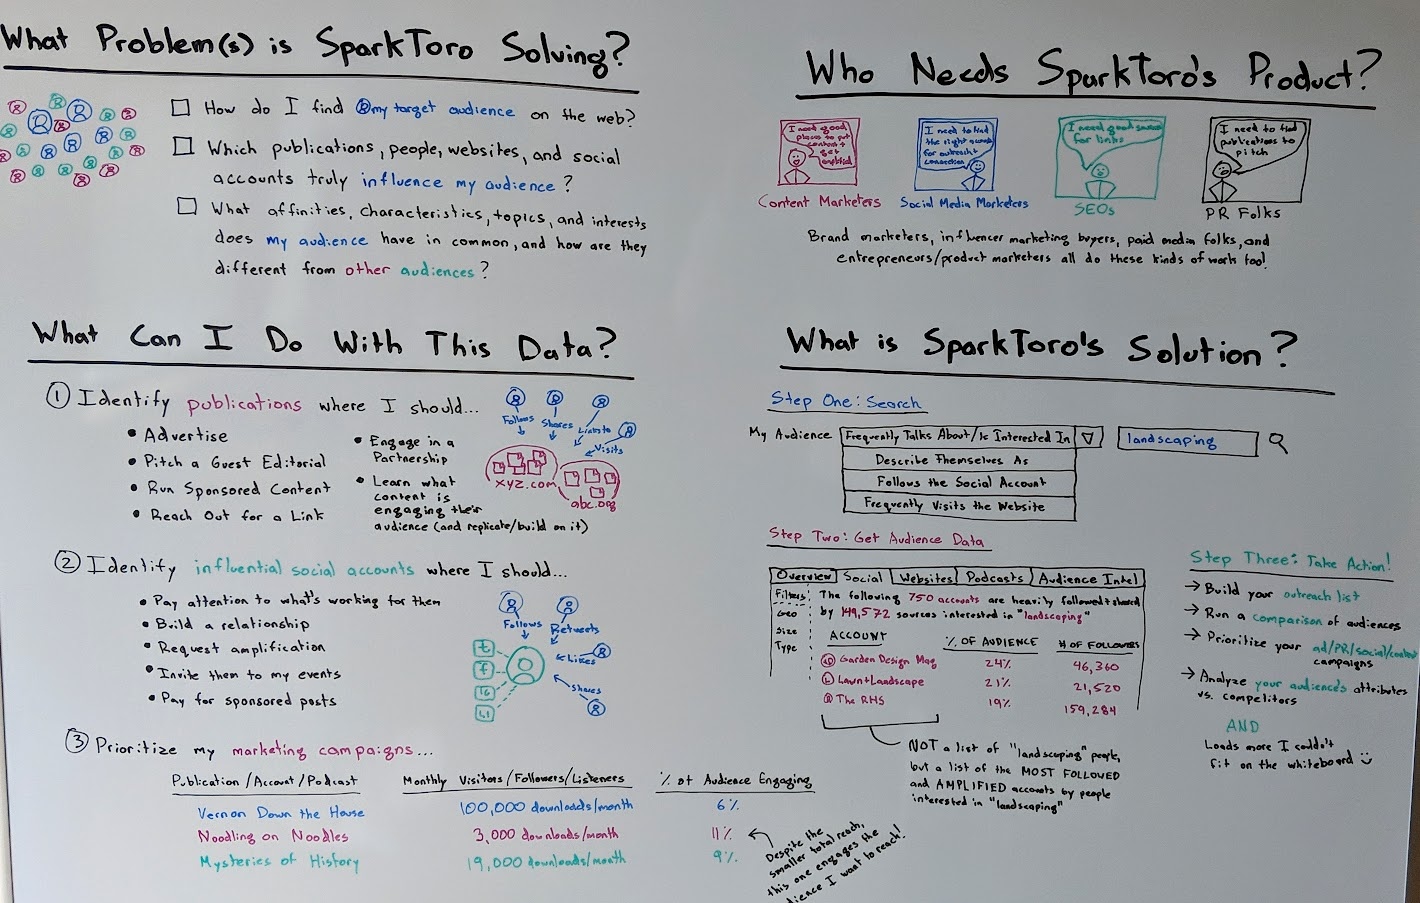 Whiteboard of the problems SparkToro helps solves.